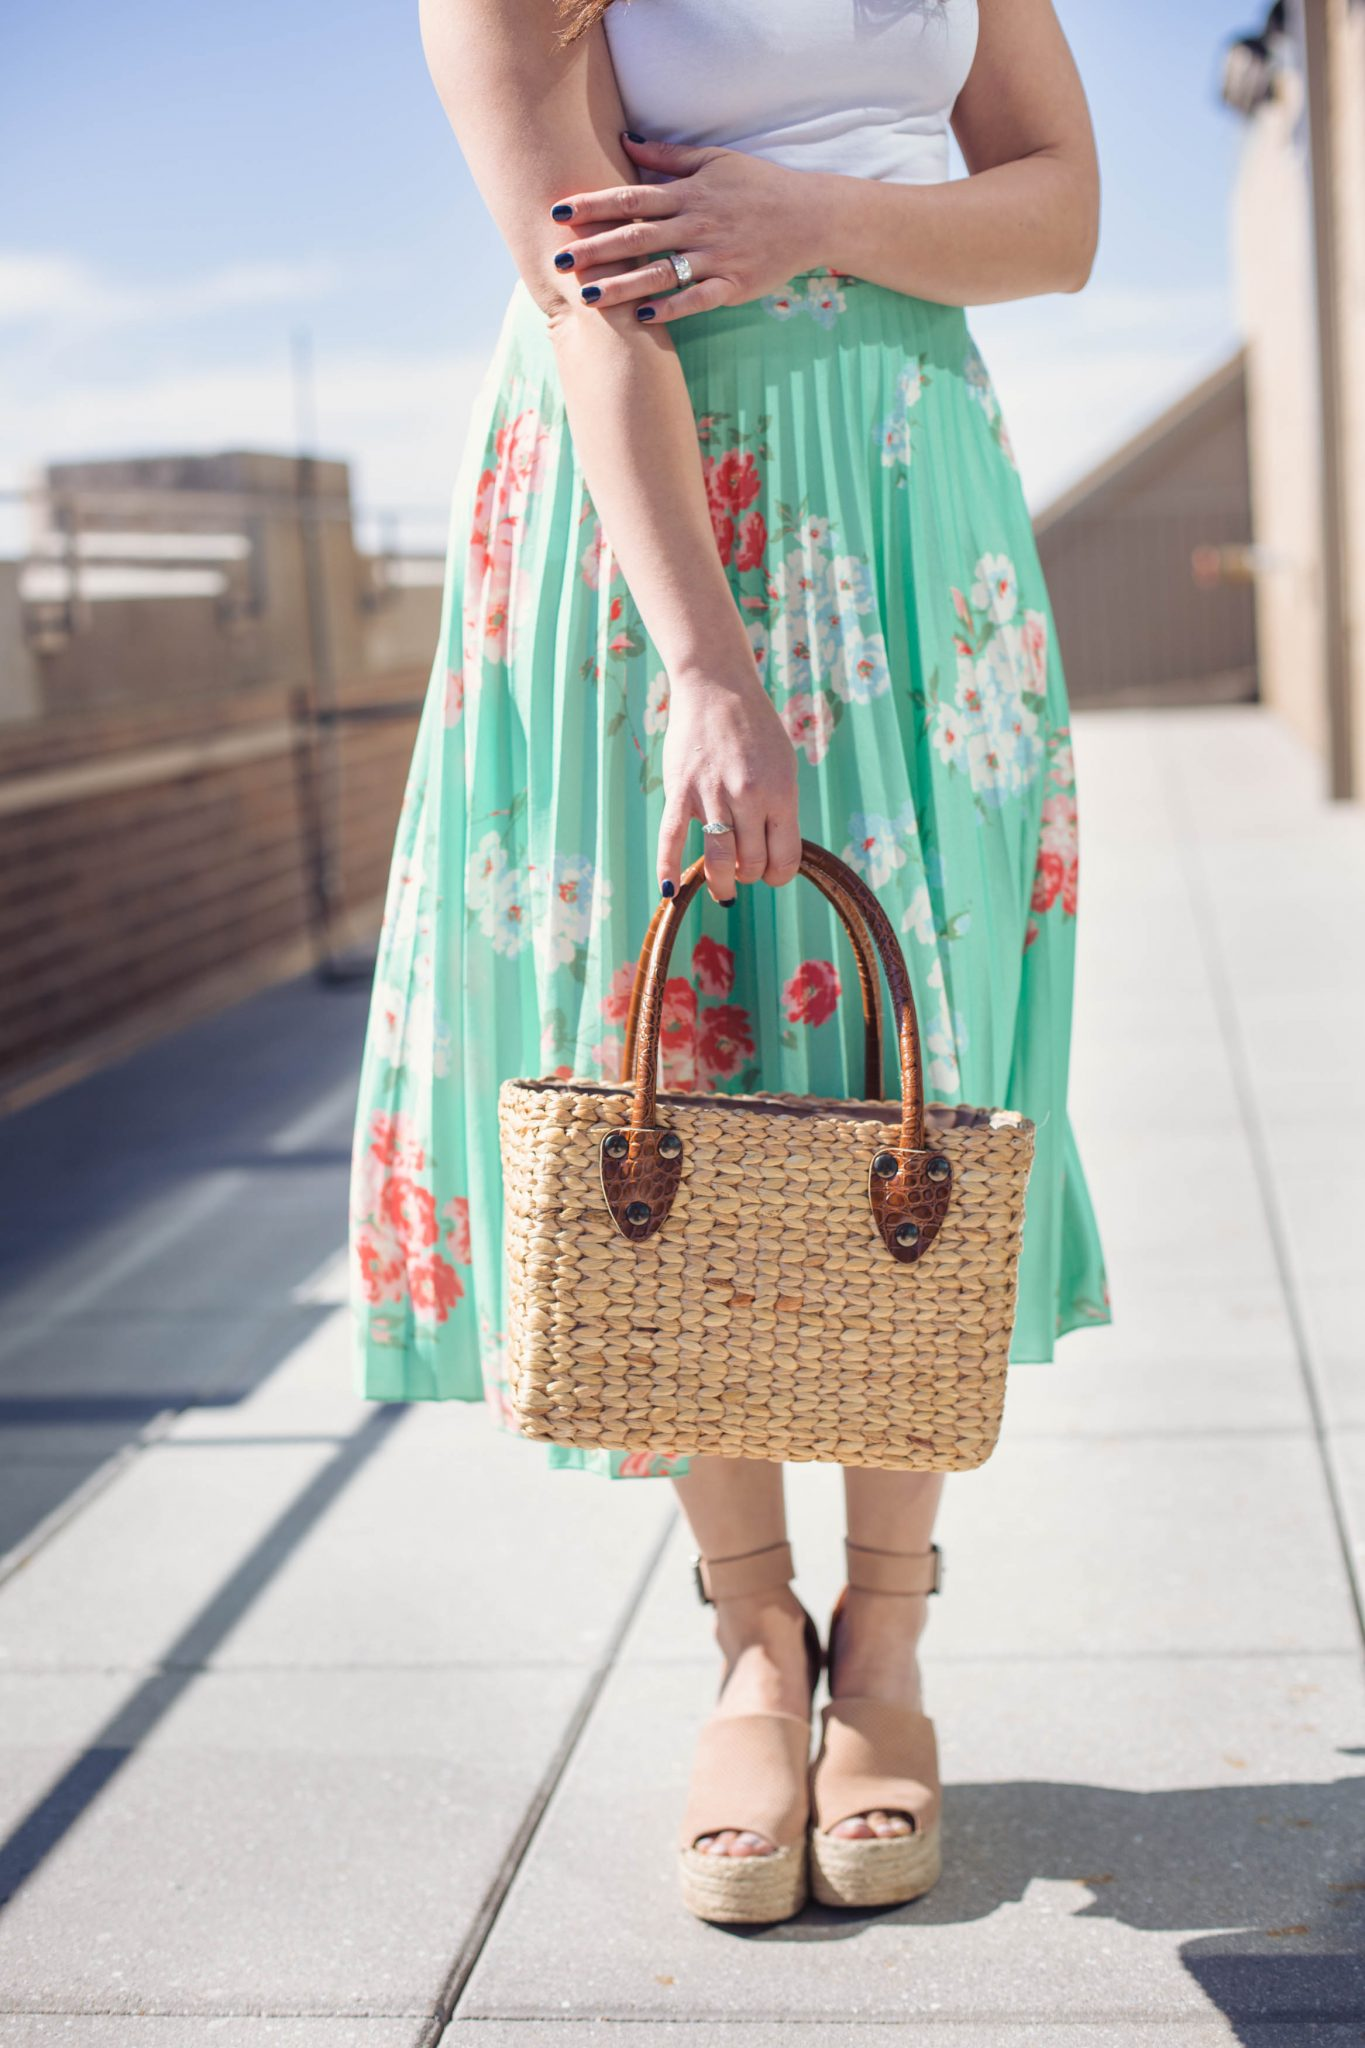 Spring In Chicago by popular Chicago fashion blogger, Glass of Glam